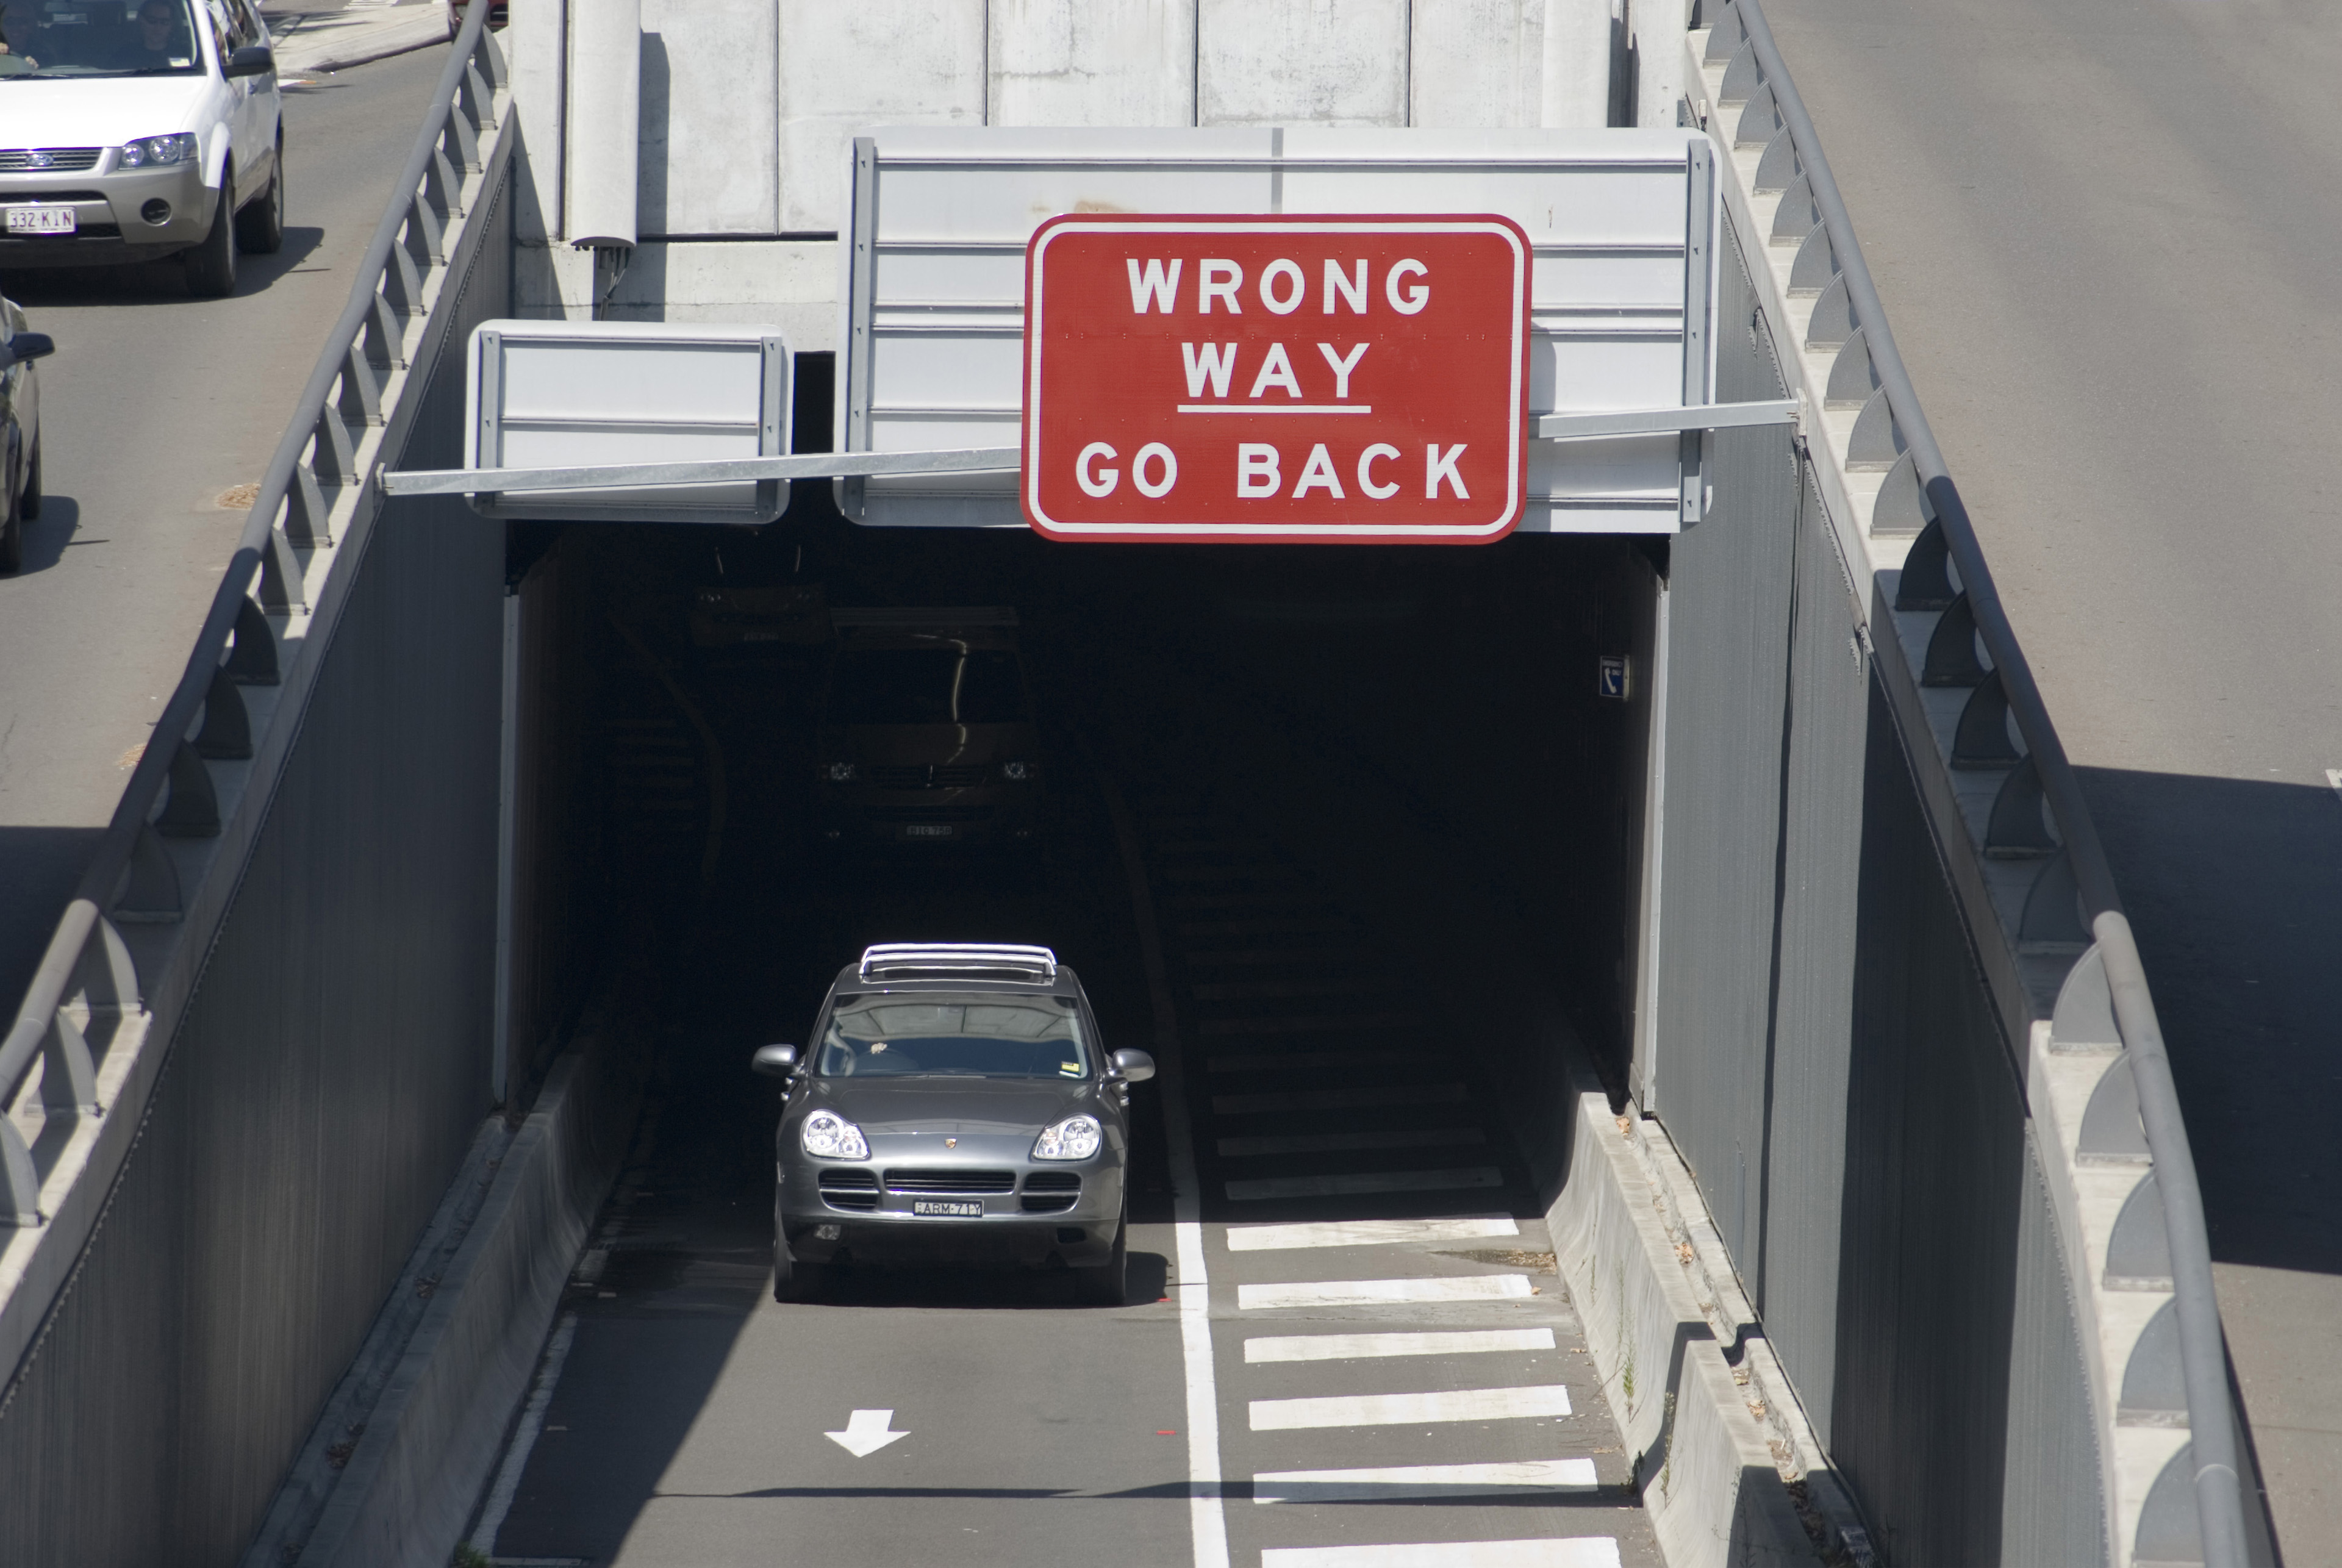 Car exiting a ramp onto the freeway under an overpass with the sign - Go Back Wrong Way